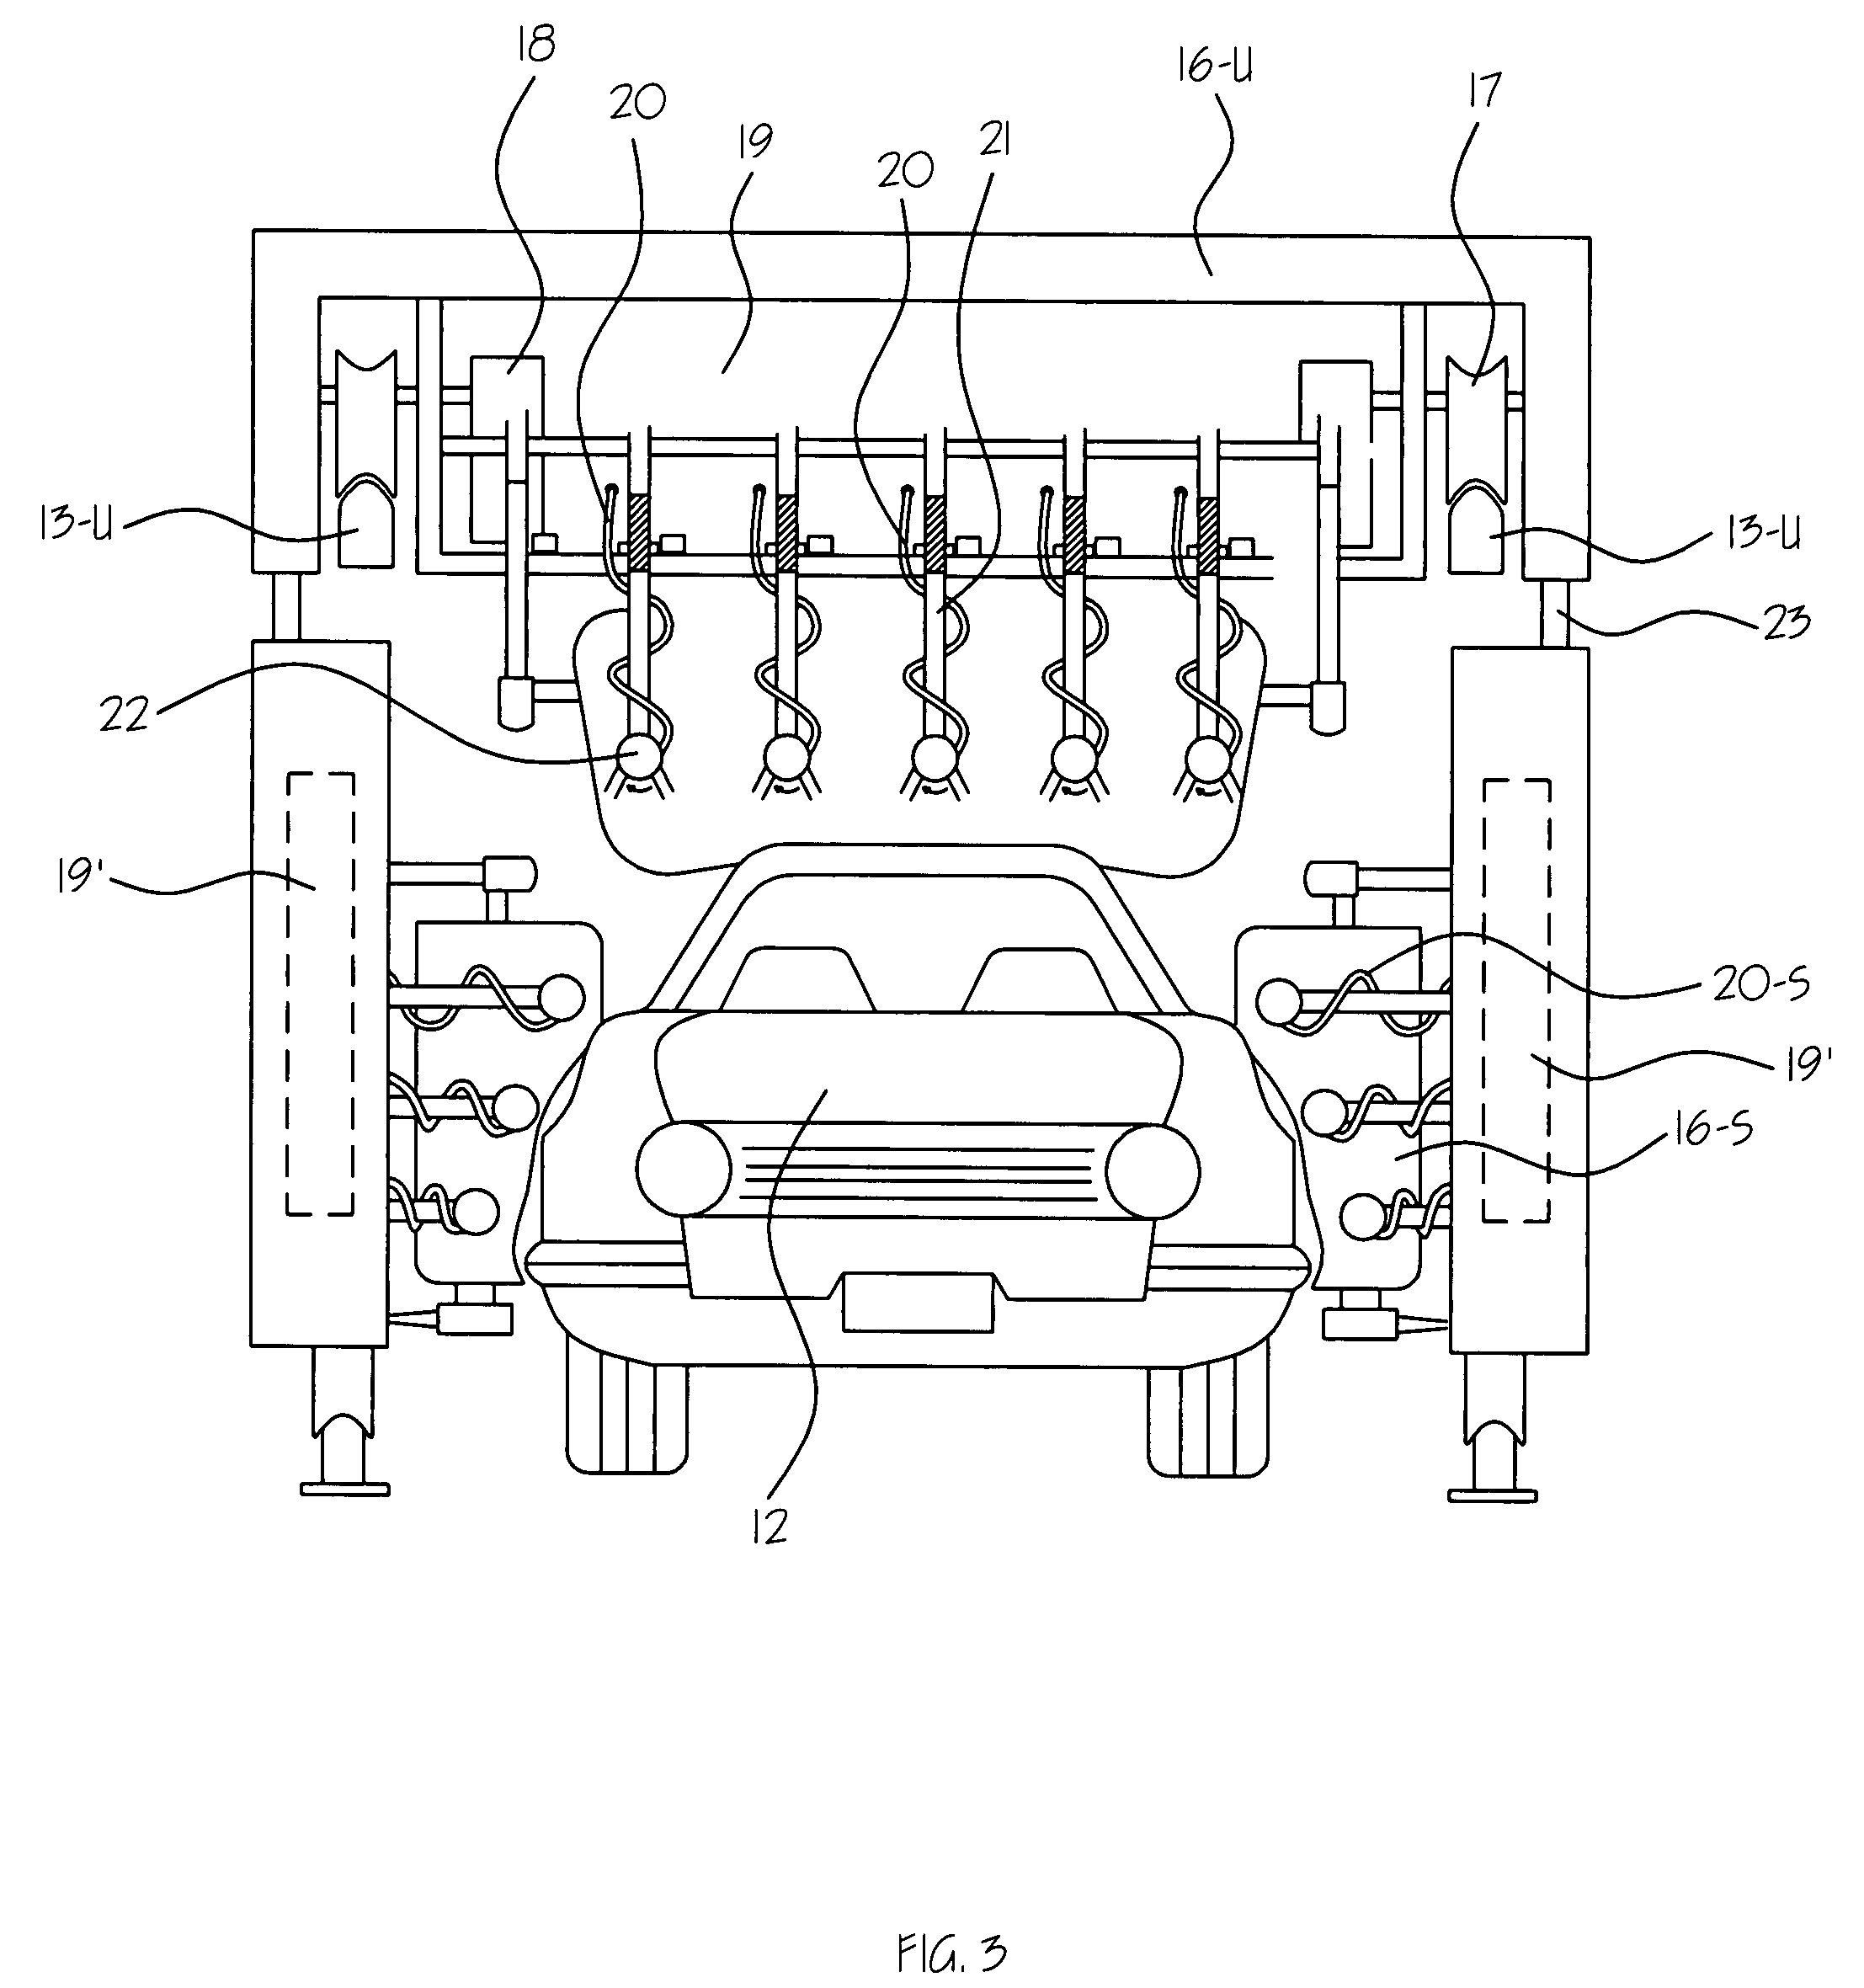 Automotive Accessory Electrical Wiring Design Automotive